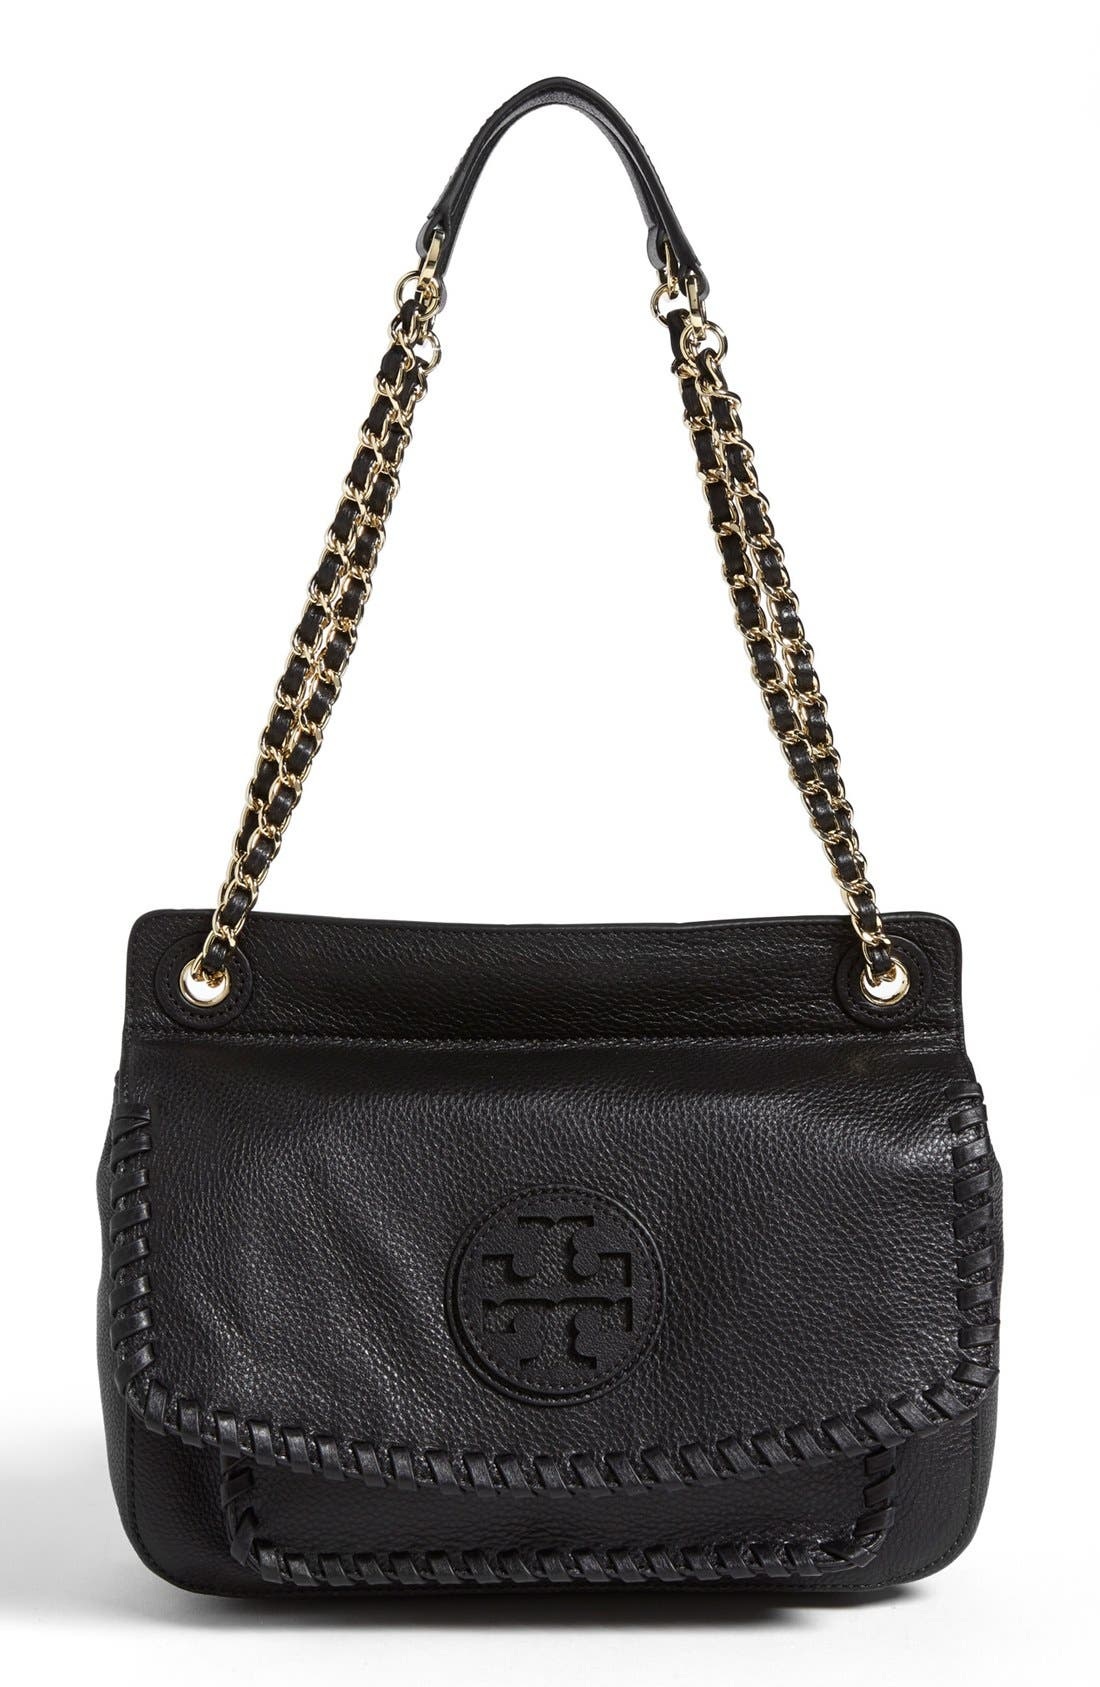 Alternate Image 1 Selected - Tory Burch 'Small Marion' Shoulder Bag